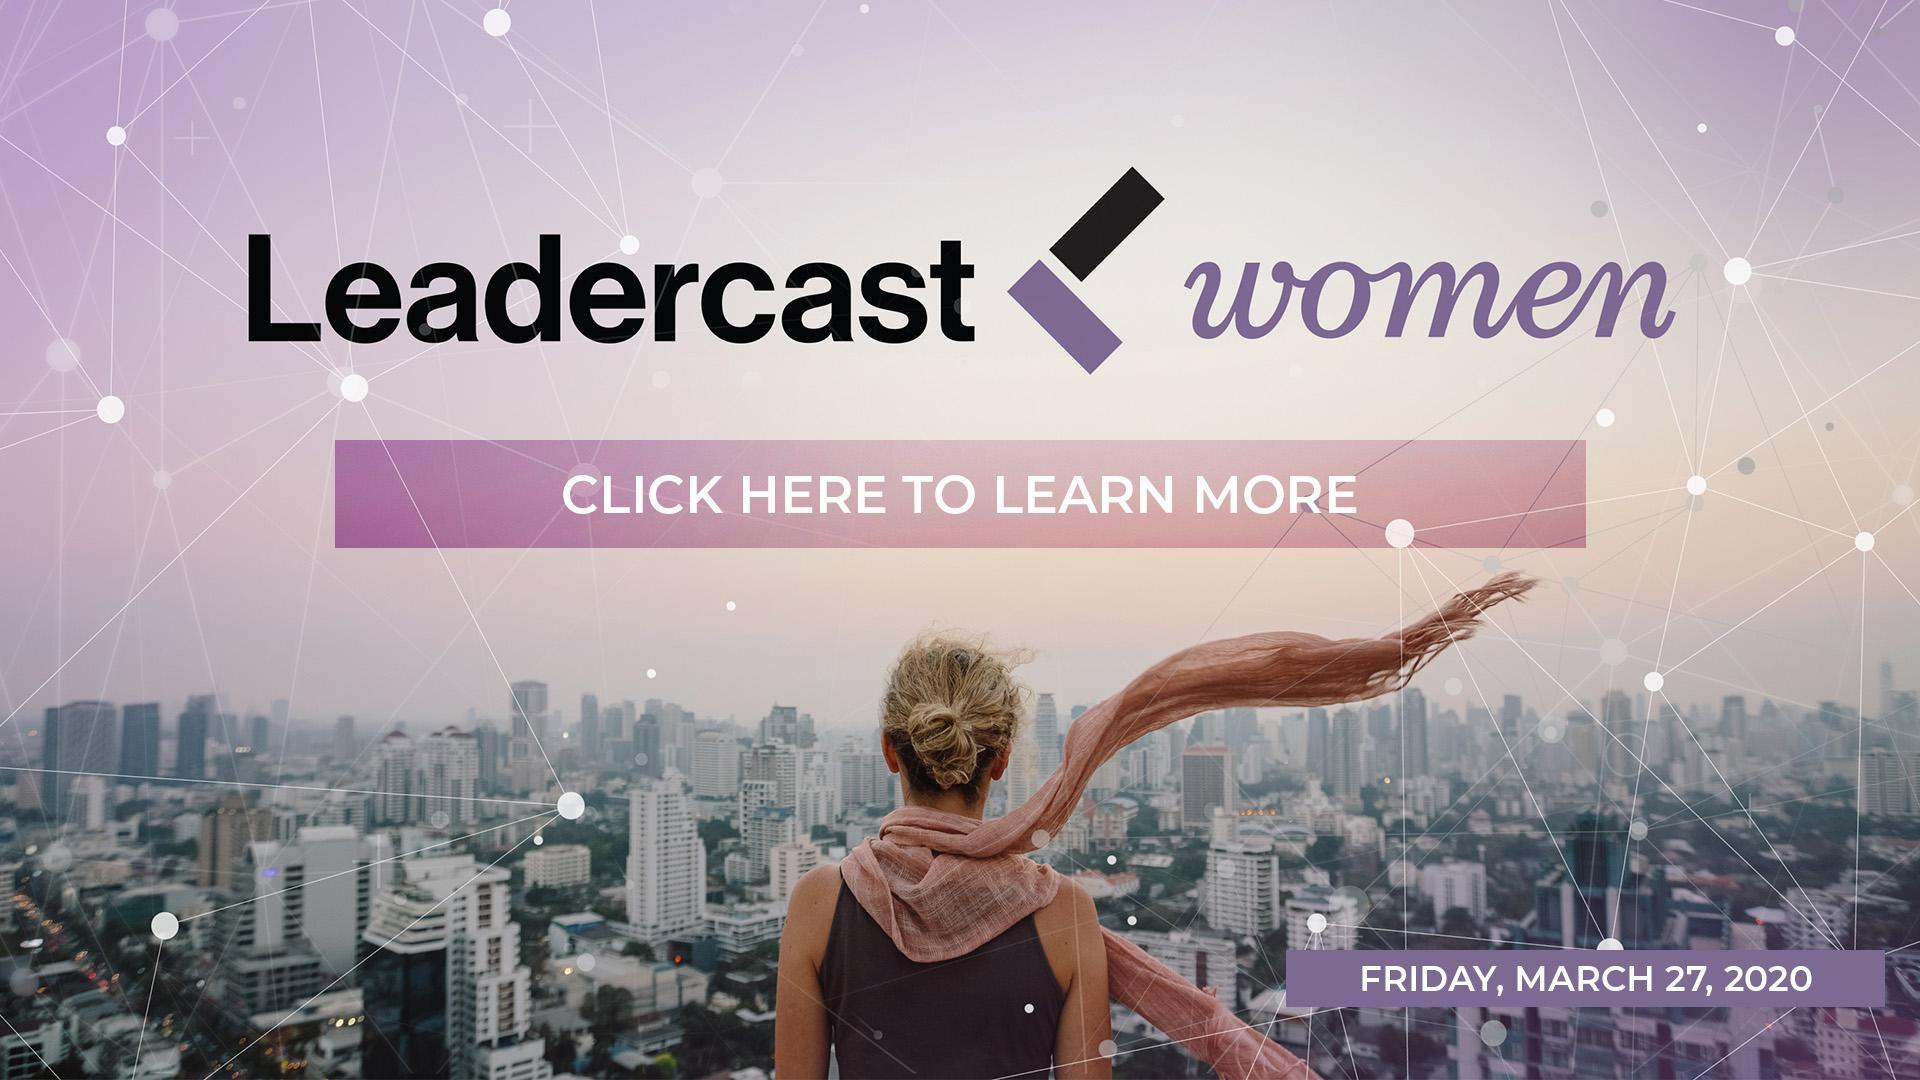 Leadercast Women. Click here to learn more. Friday, March 27, 2020